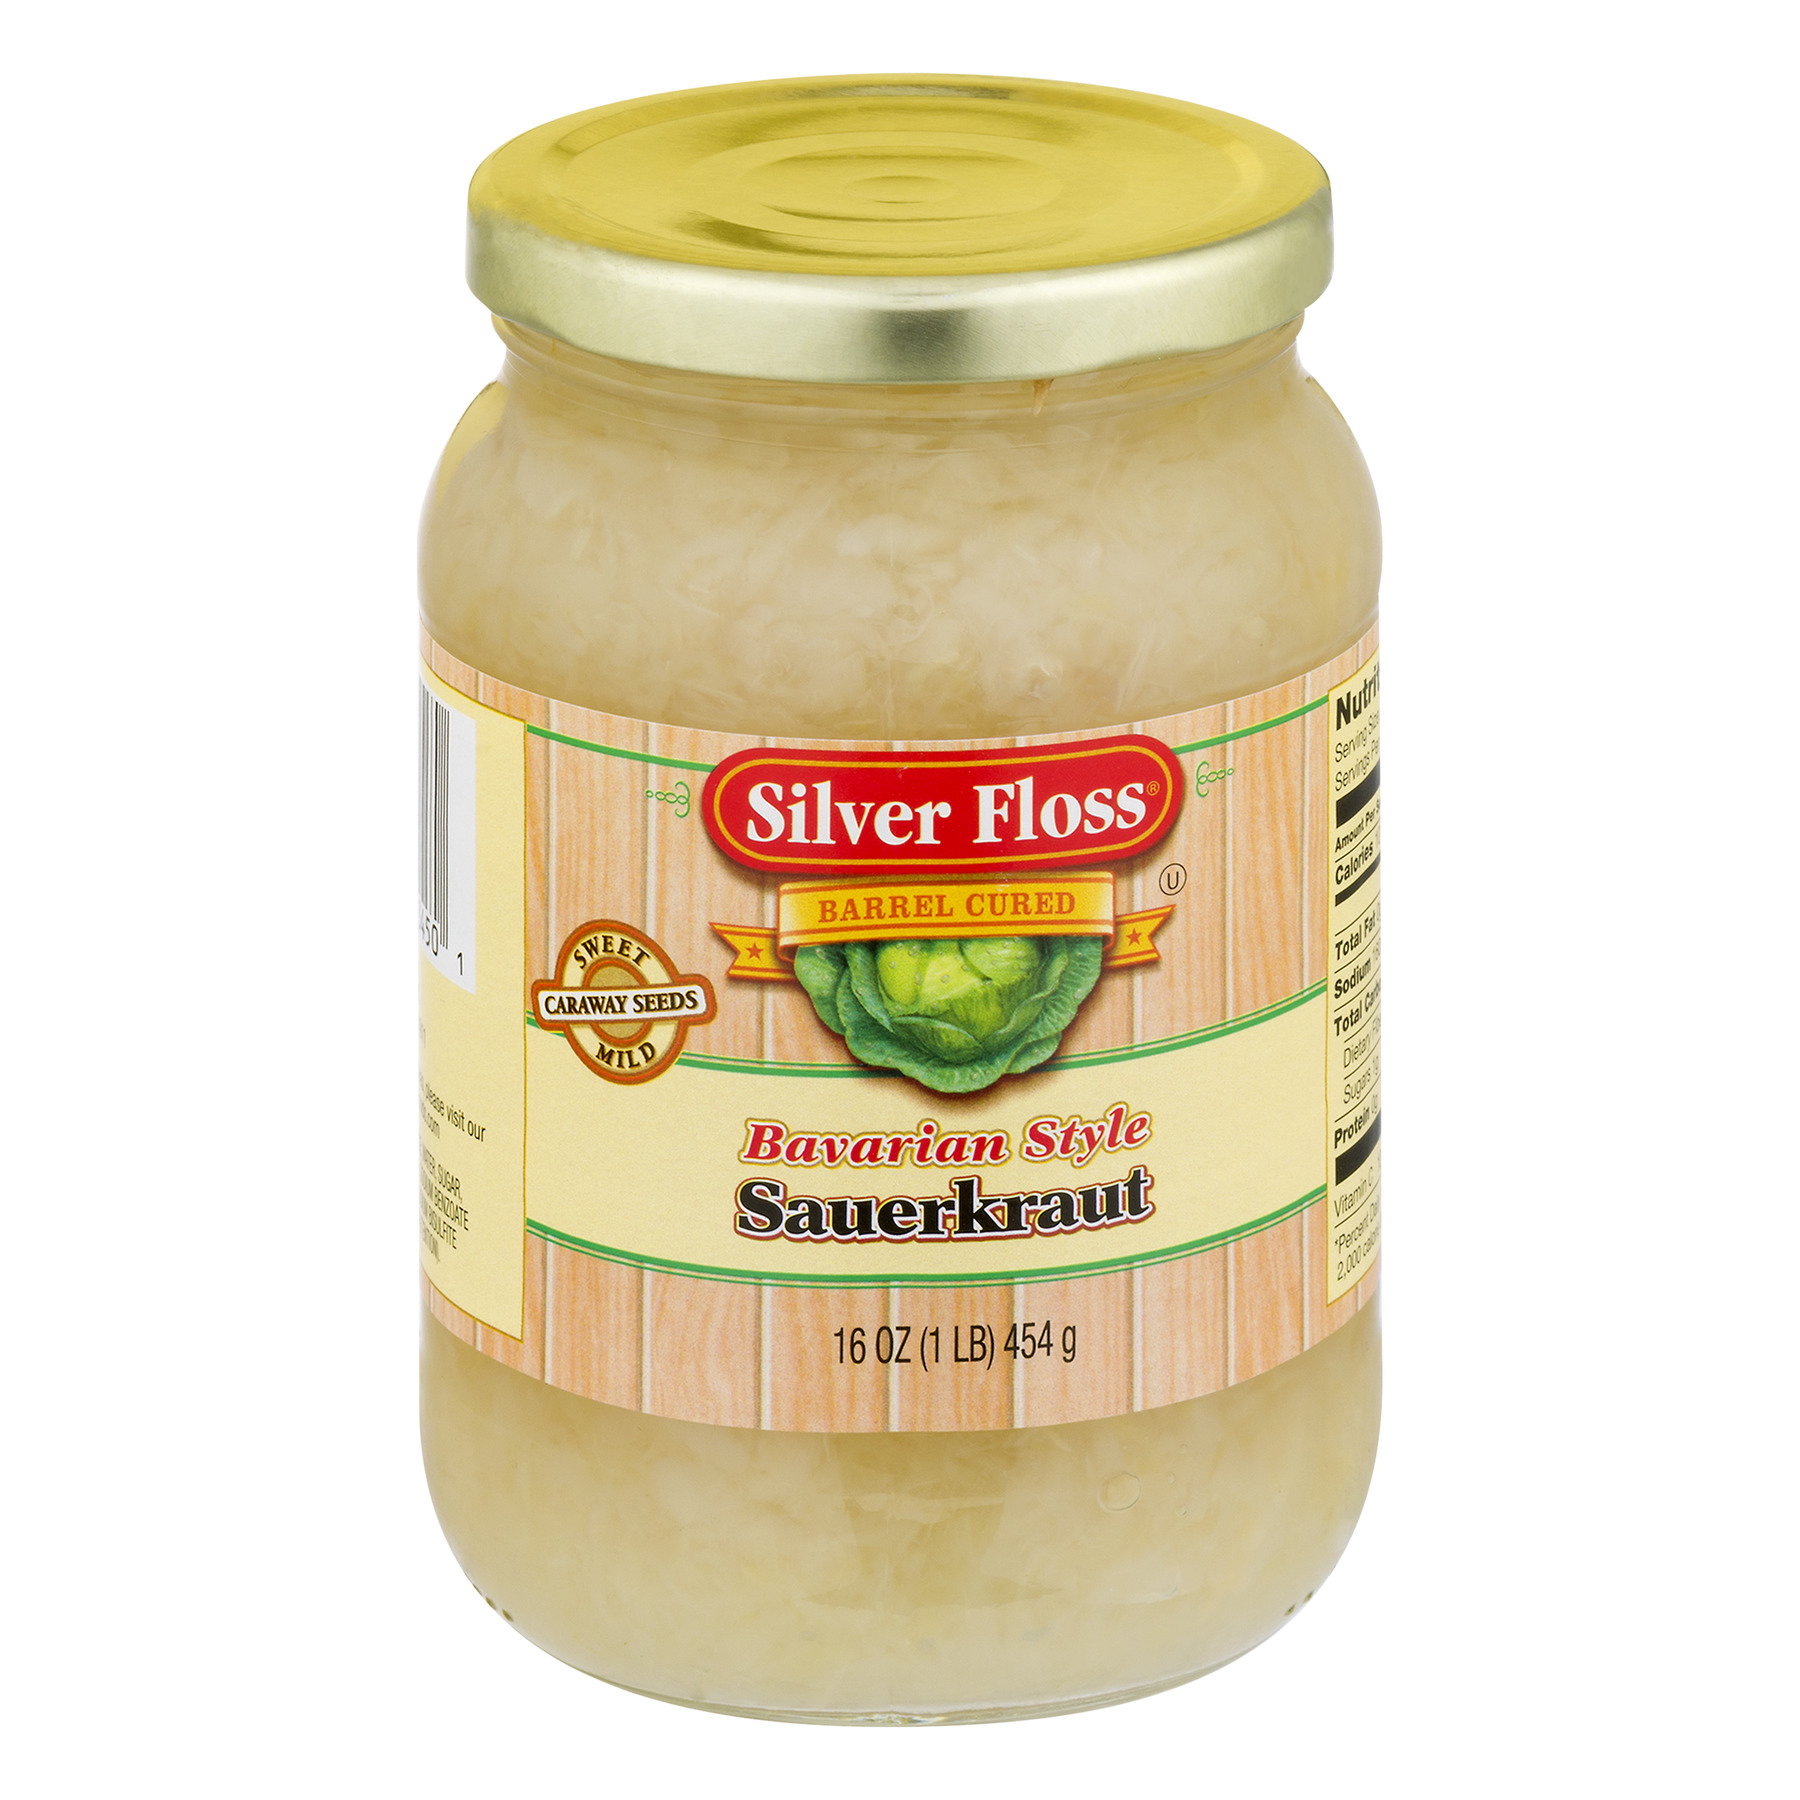 Sliver Floss Barrel Cured Bavarian Style Sauerkraut, 14.4 OZ